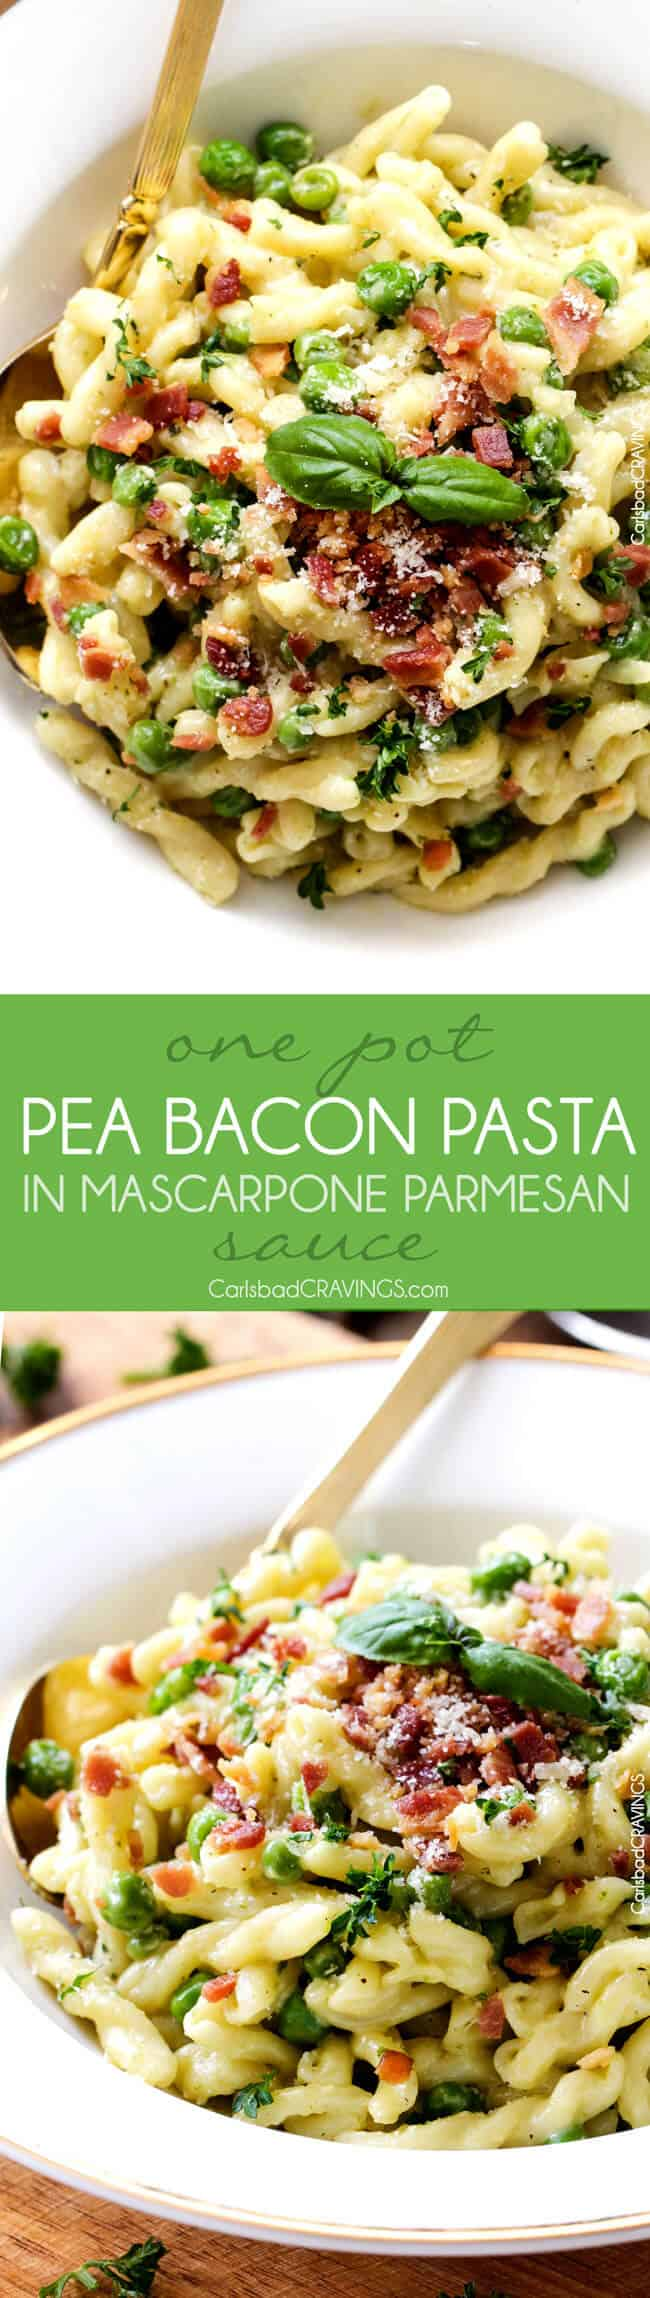 One Pot Pea and Bacon Pasta in Mascarpone Parmesan Sauce is a decadently delicious pasta and the EASIEST pasta you will ever make (seriously look at the directions)! Fabulous company or special occasion stress free side! #Easter #holiday #Christmas #Thanksgiving #pesto